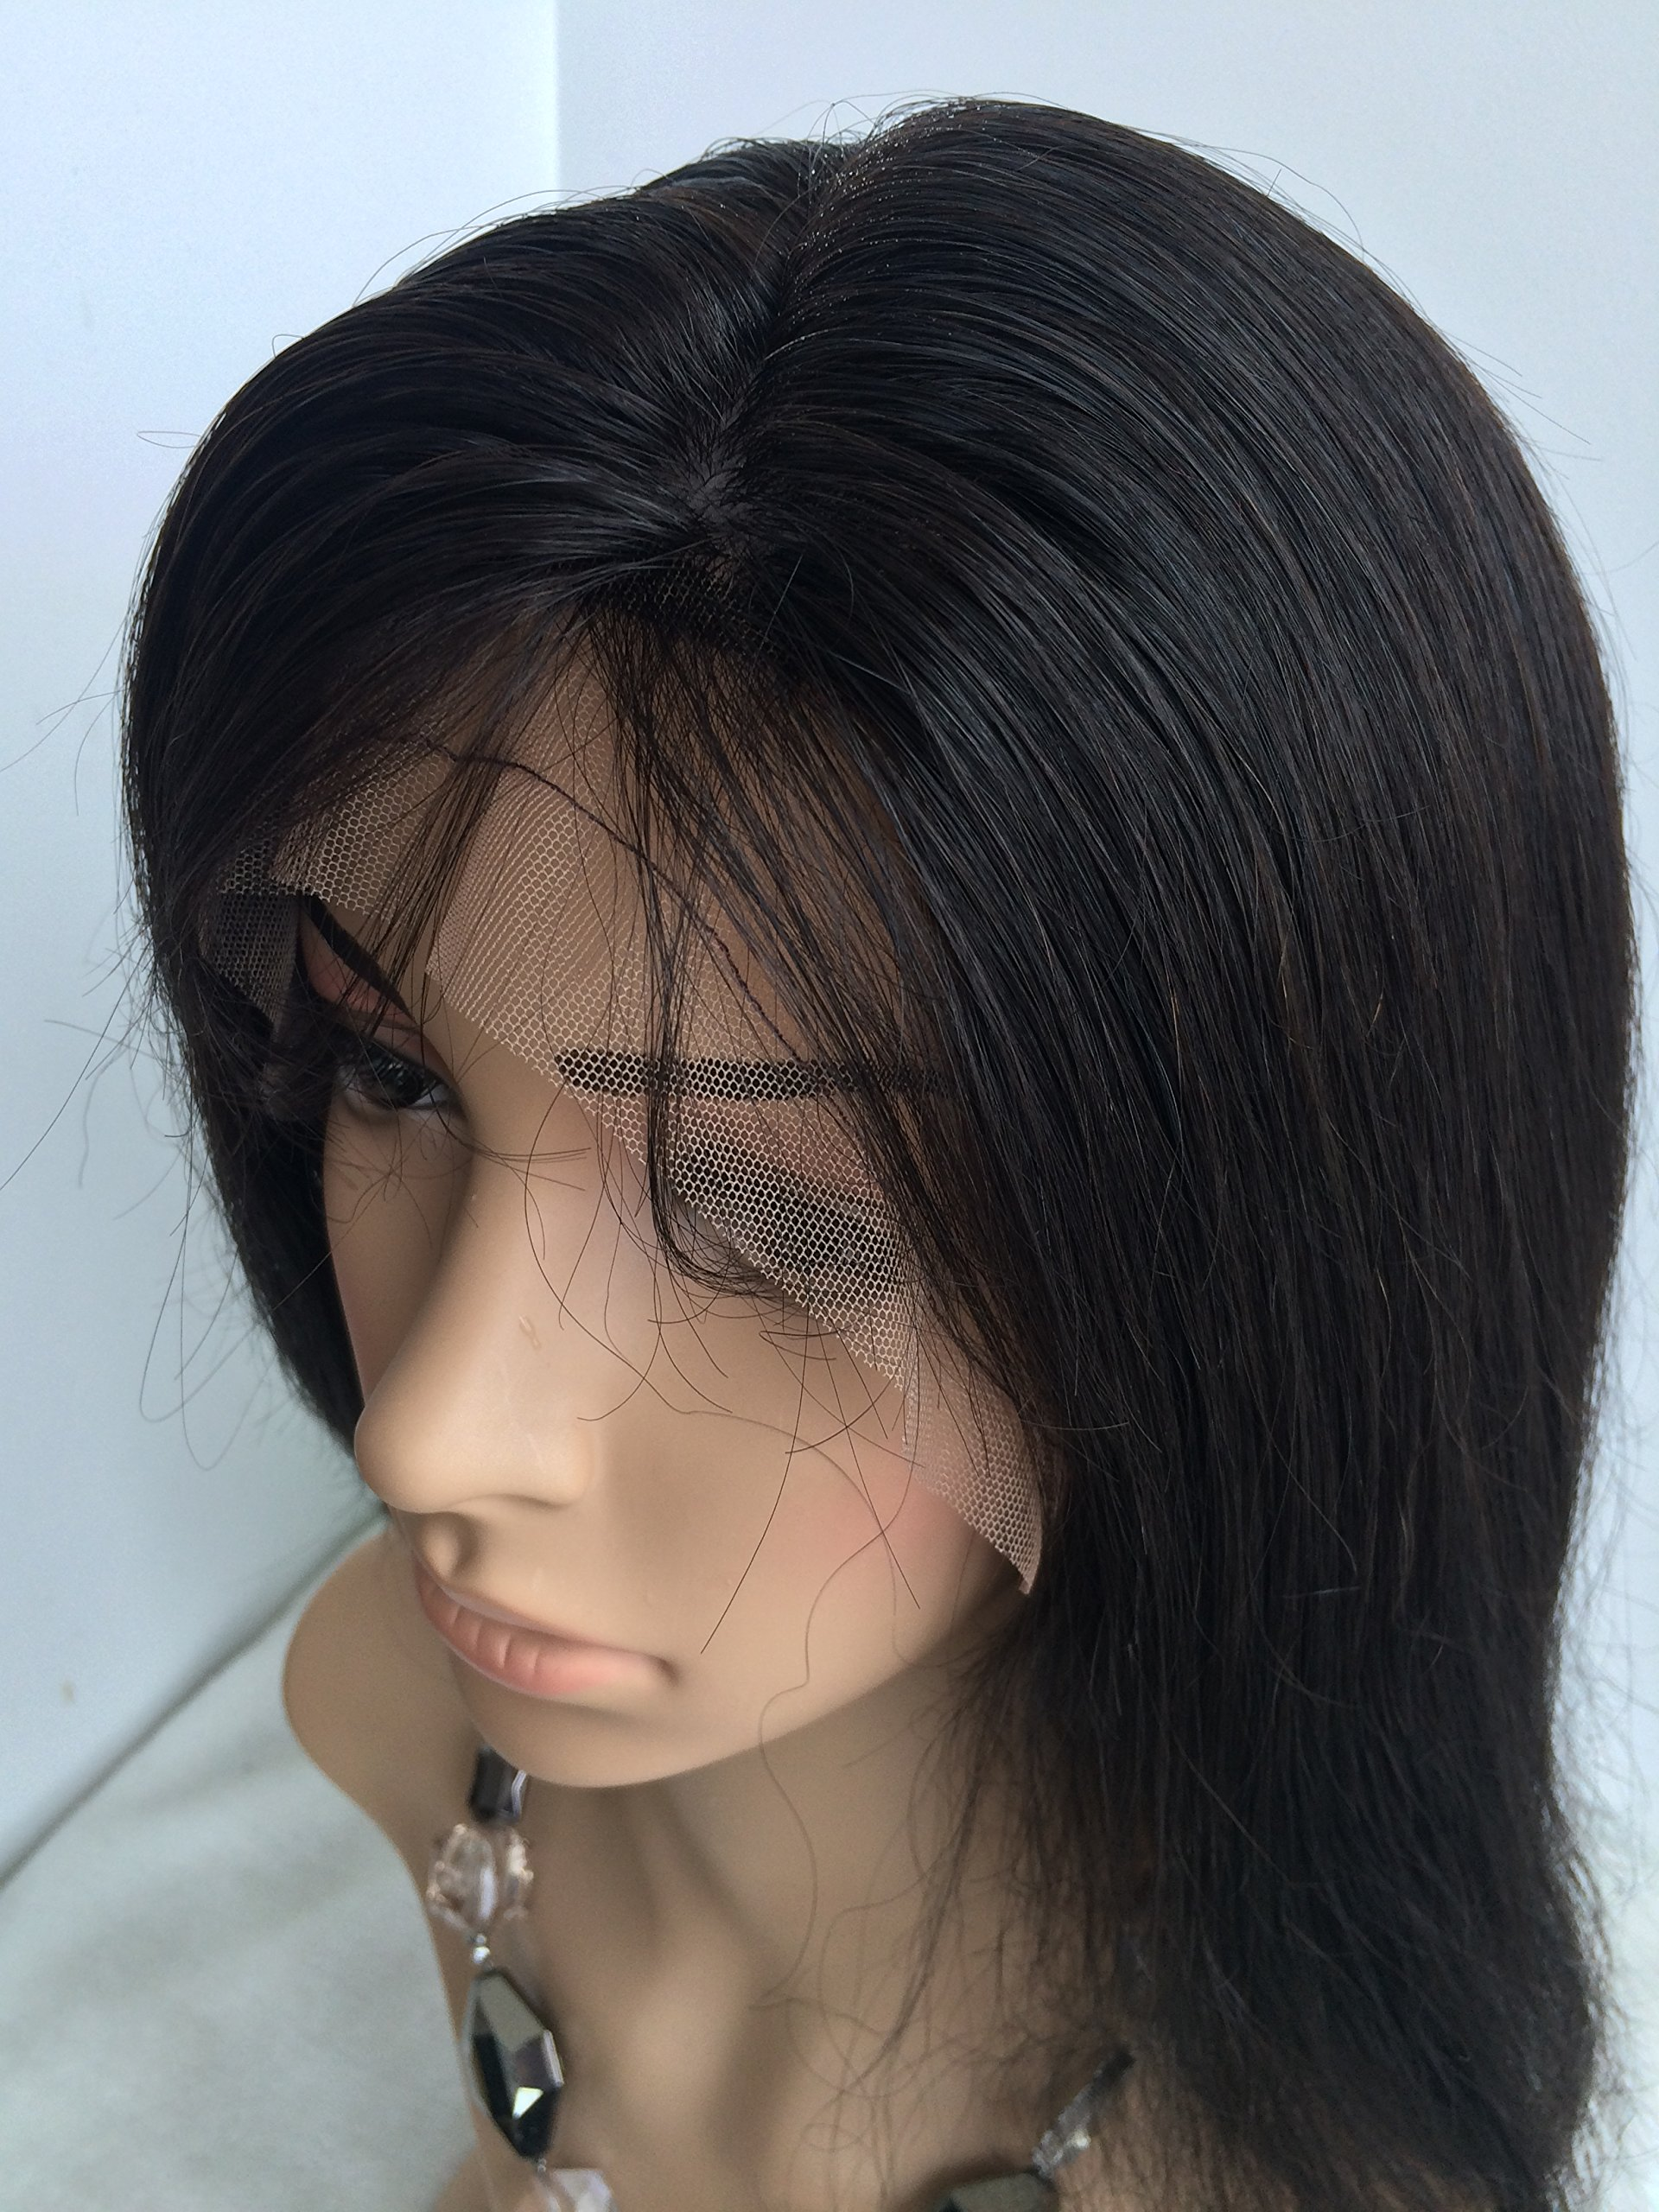 16 INCH,NATURAL COLOR,CHINESE VIRGIN SILK STRAIGHT FULL LACE SILK TOP WIG by April silk top wigs (Image #4)